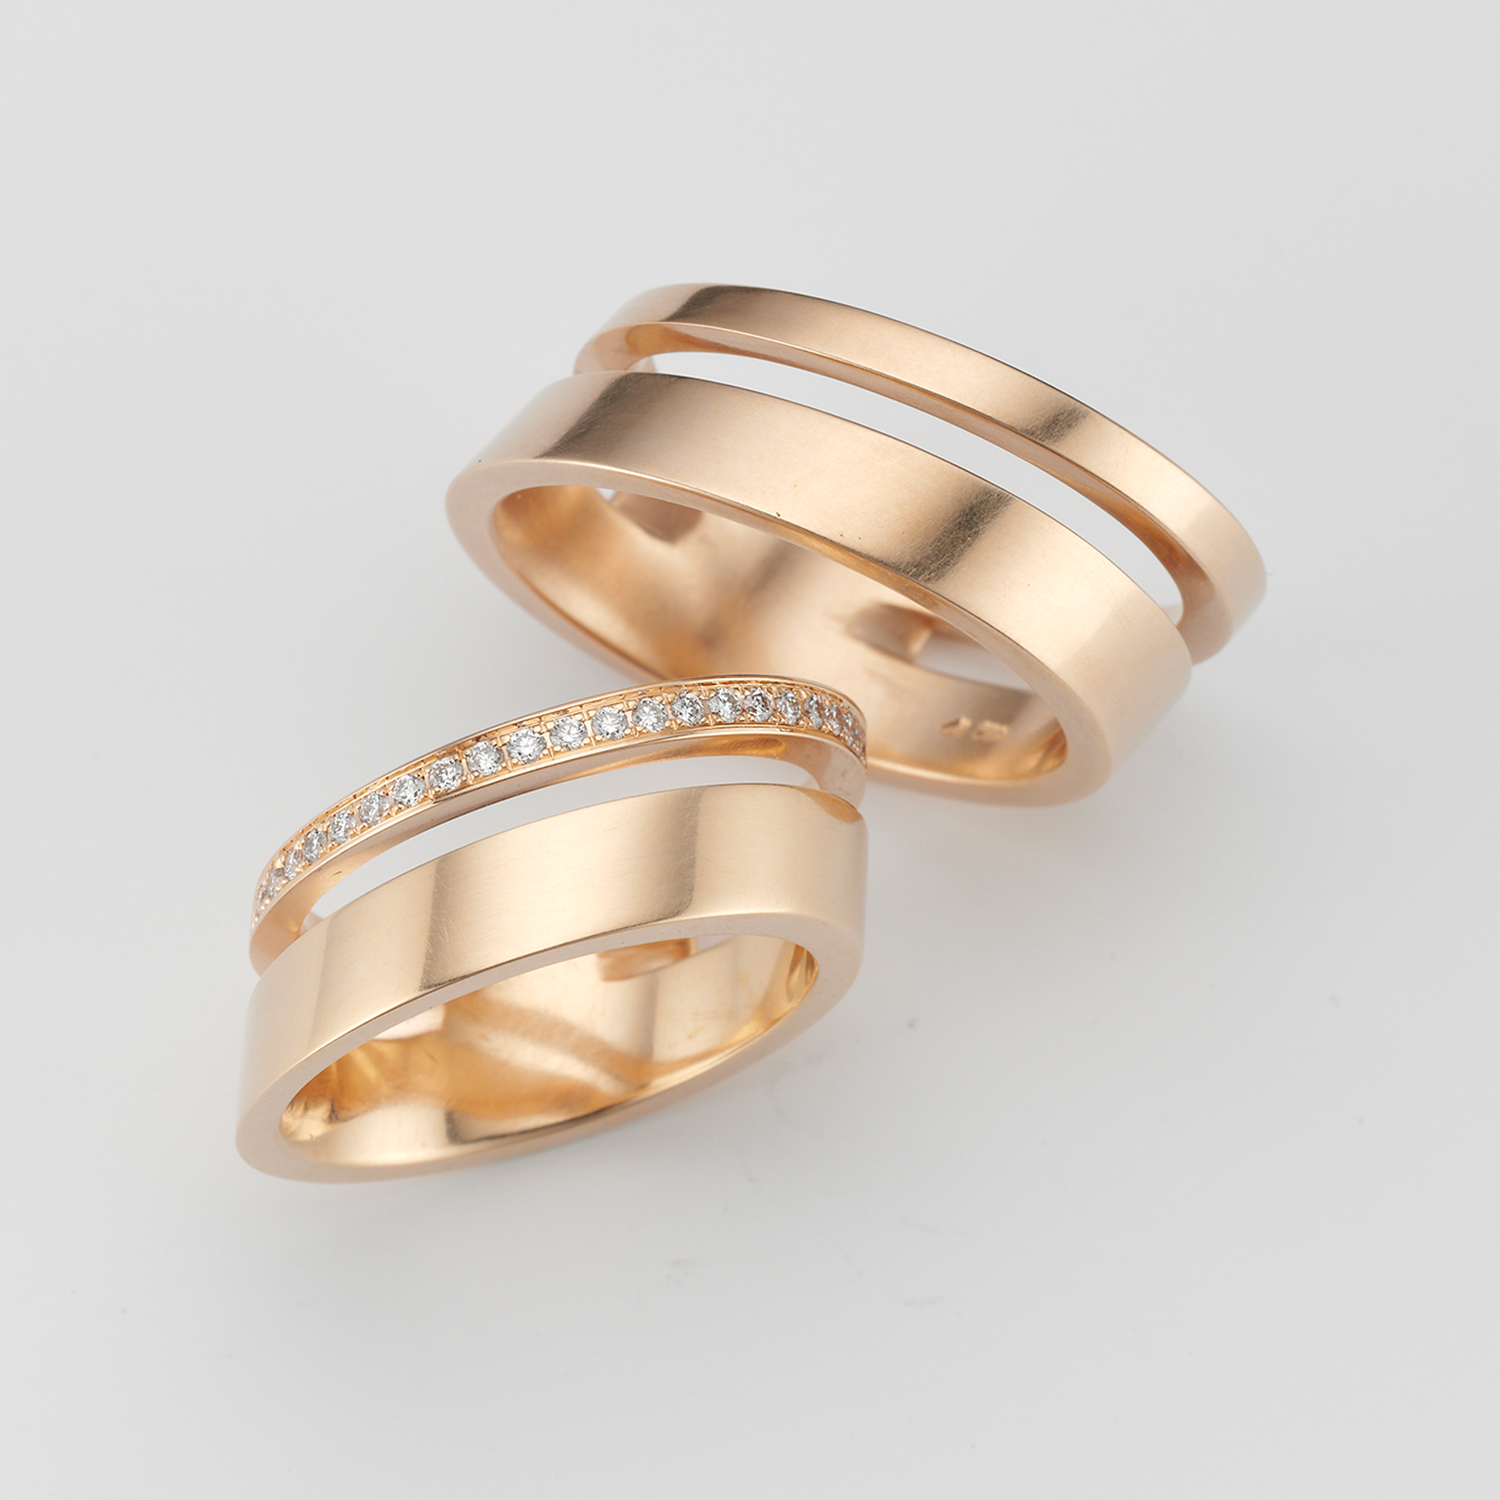 elegant wedding rings in 18 carat gold